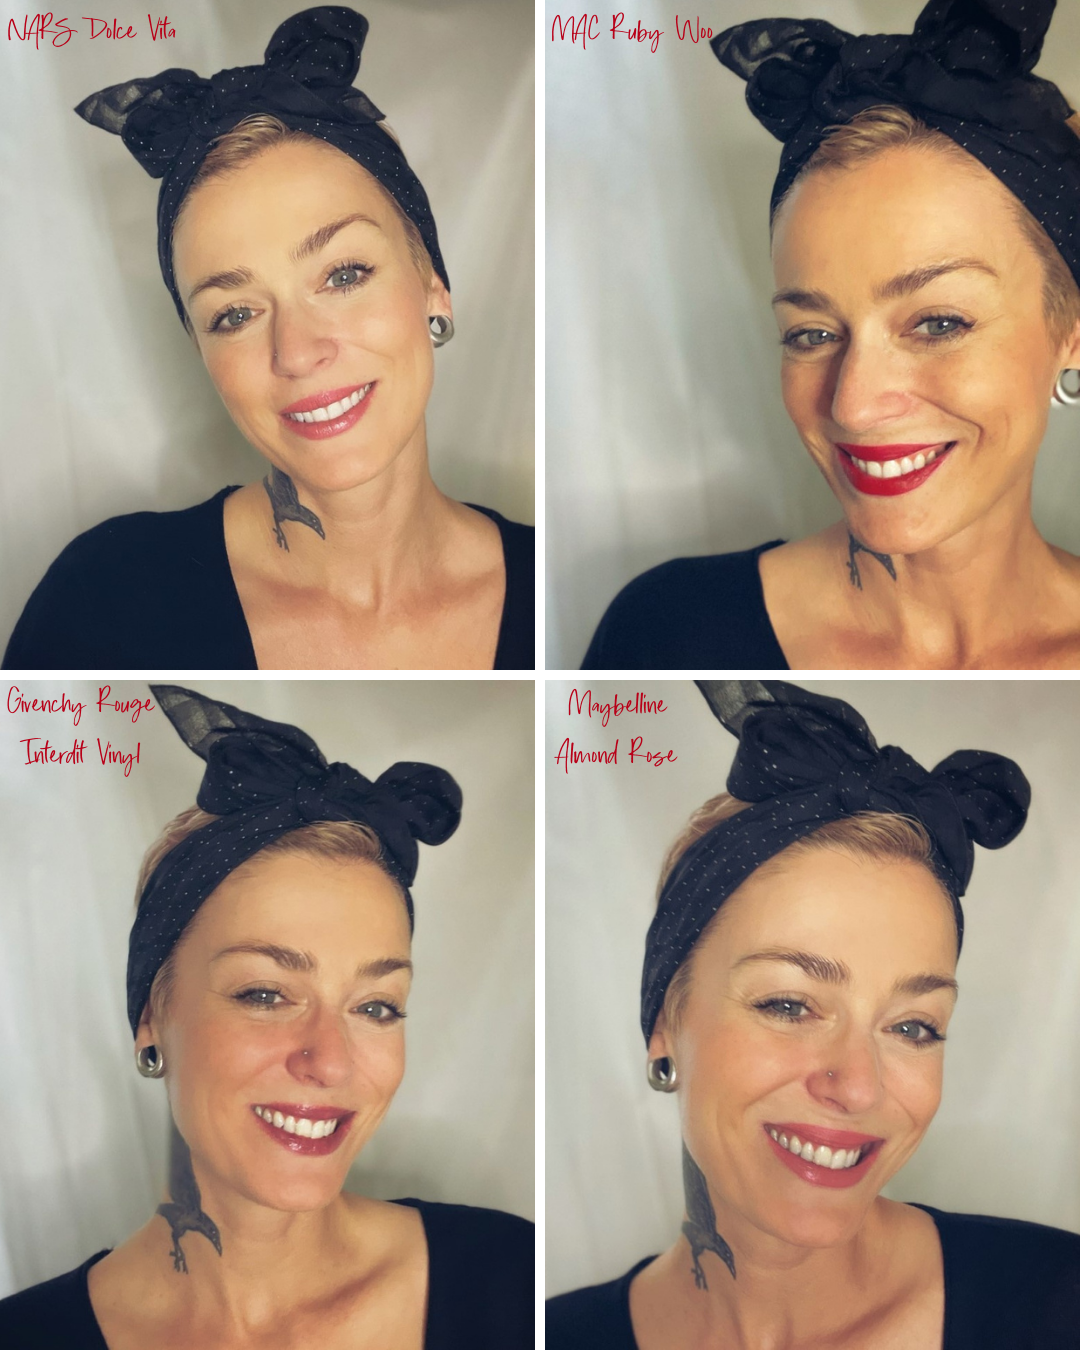 Go-To Lip Colors For Women Over 40 - Anna Wearing 4 Lip Colors including NARS Dolce Vita, MAC Ruby Woo, Givenchy Rouge Interdit Vinyl, and Maybelline Almond Rose